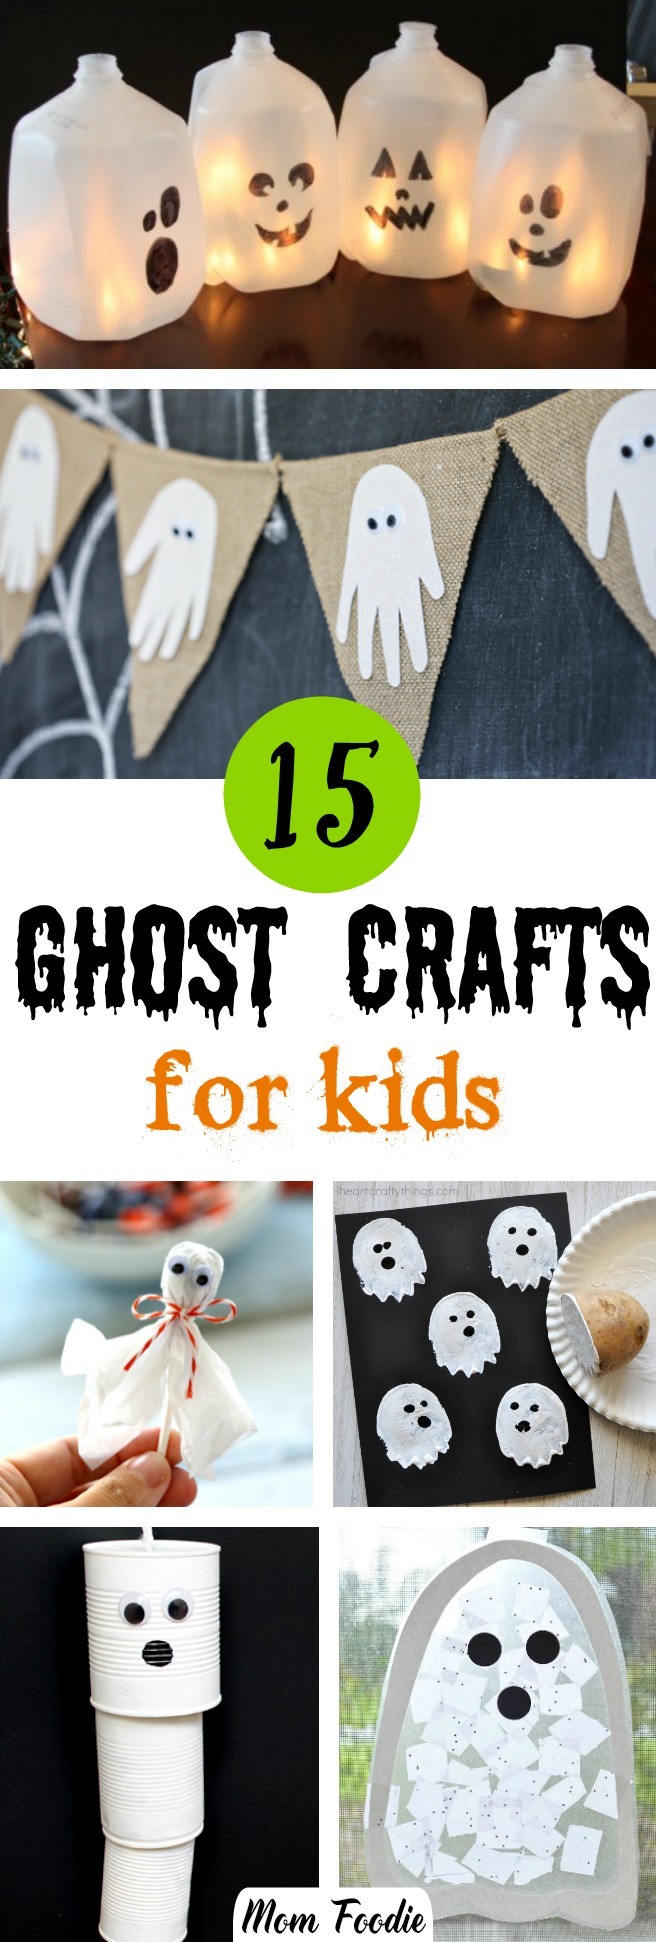 Halloween ghost crafts for kids - easy Halloween crafts kids will love doing that feature spooky ghosts.